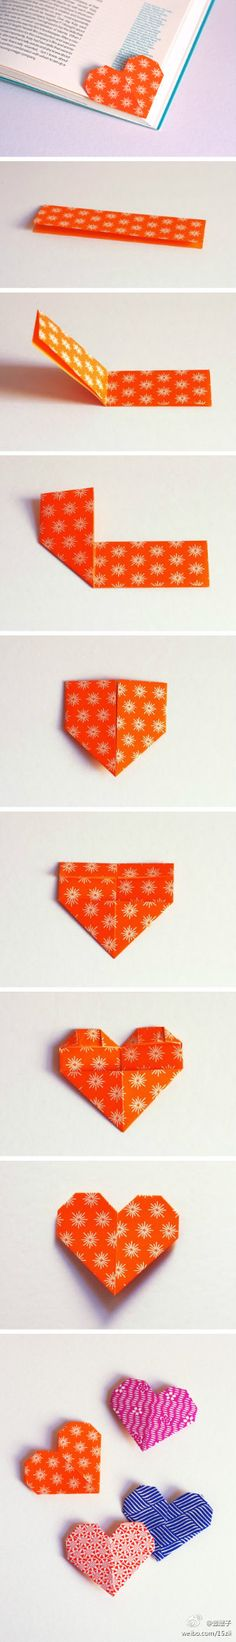 DIY Origami Heart-shaped page Marker